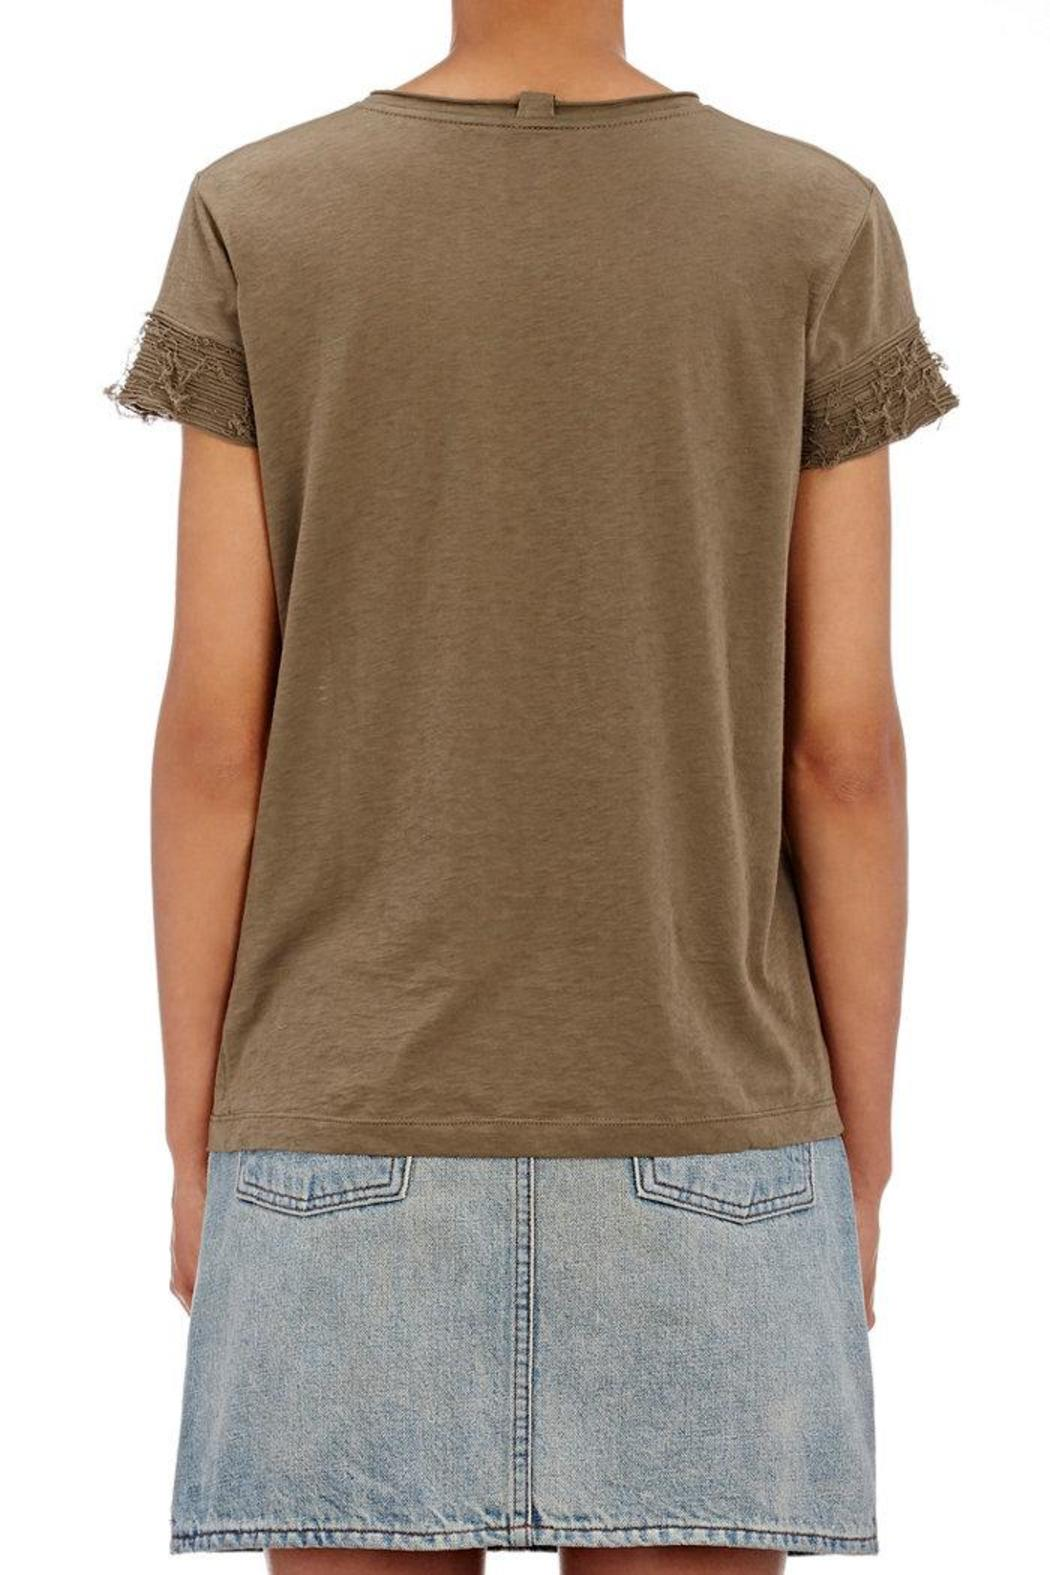 Helmut Lang Raw Edge Tee - Side Cropped Image